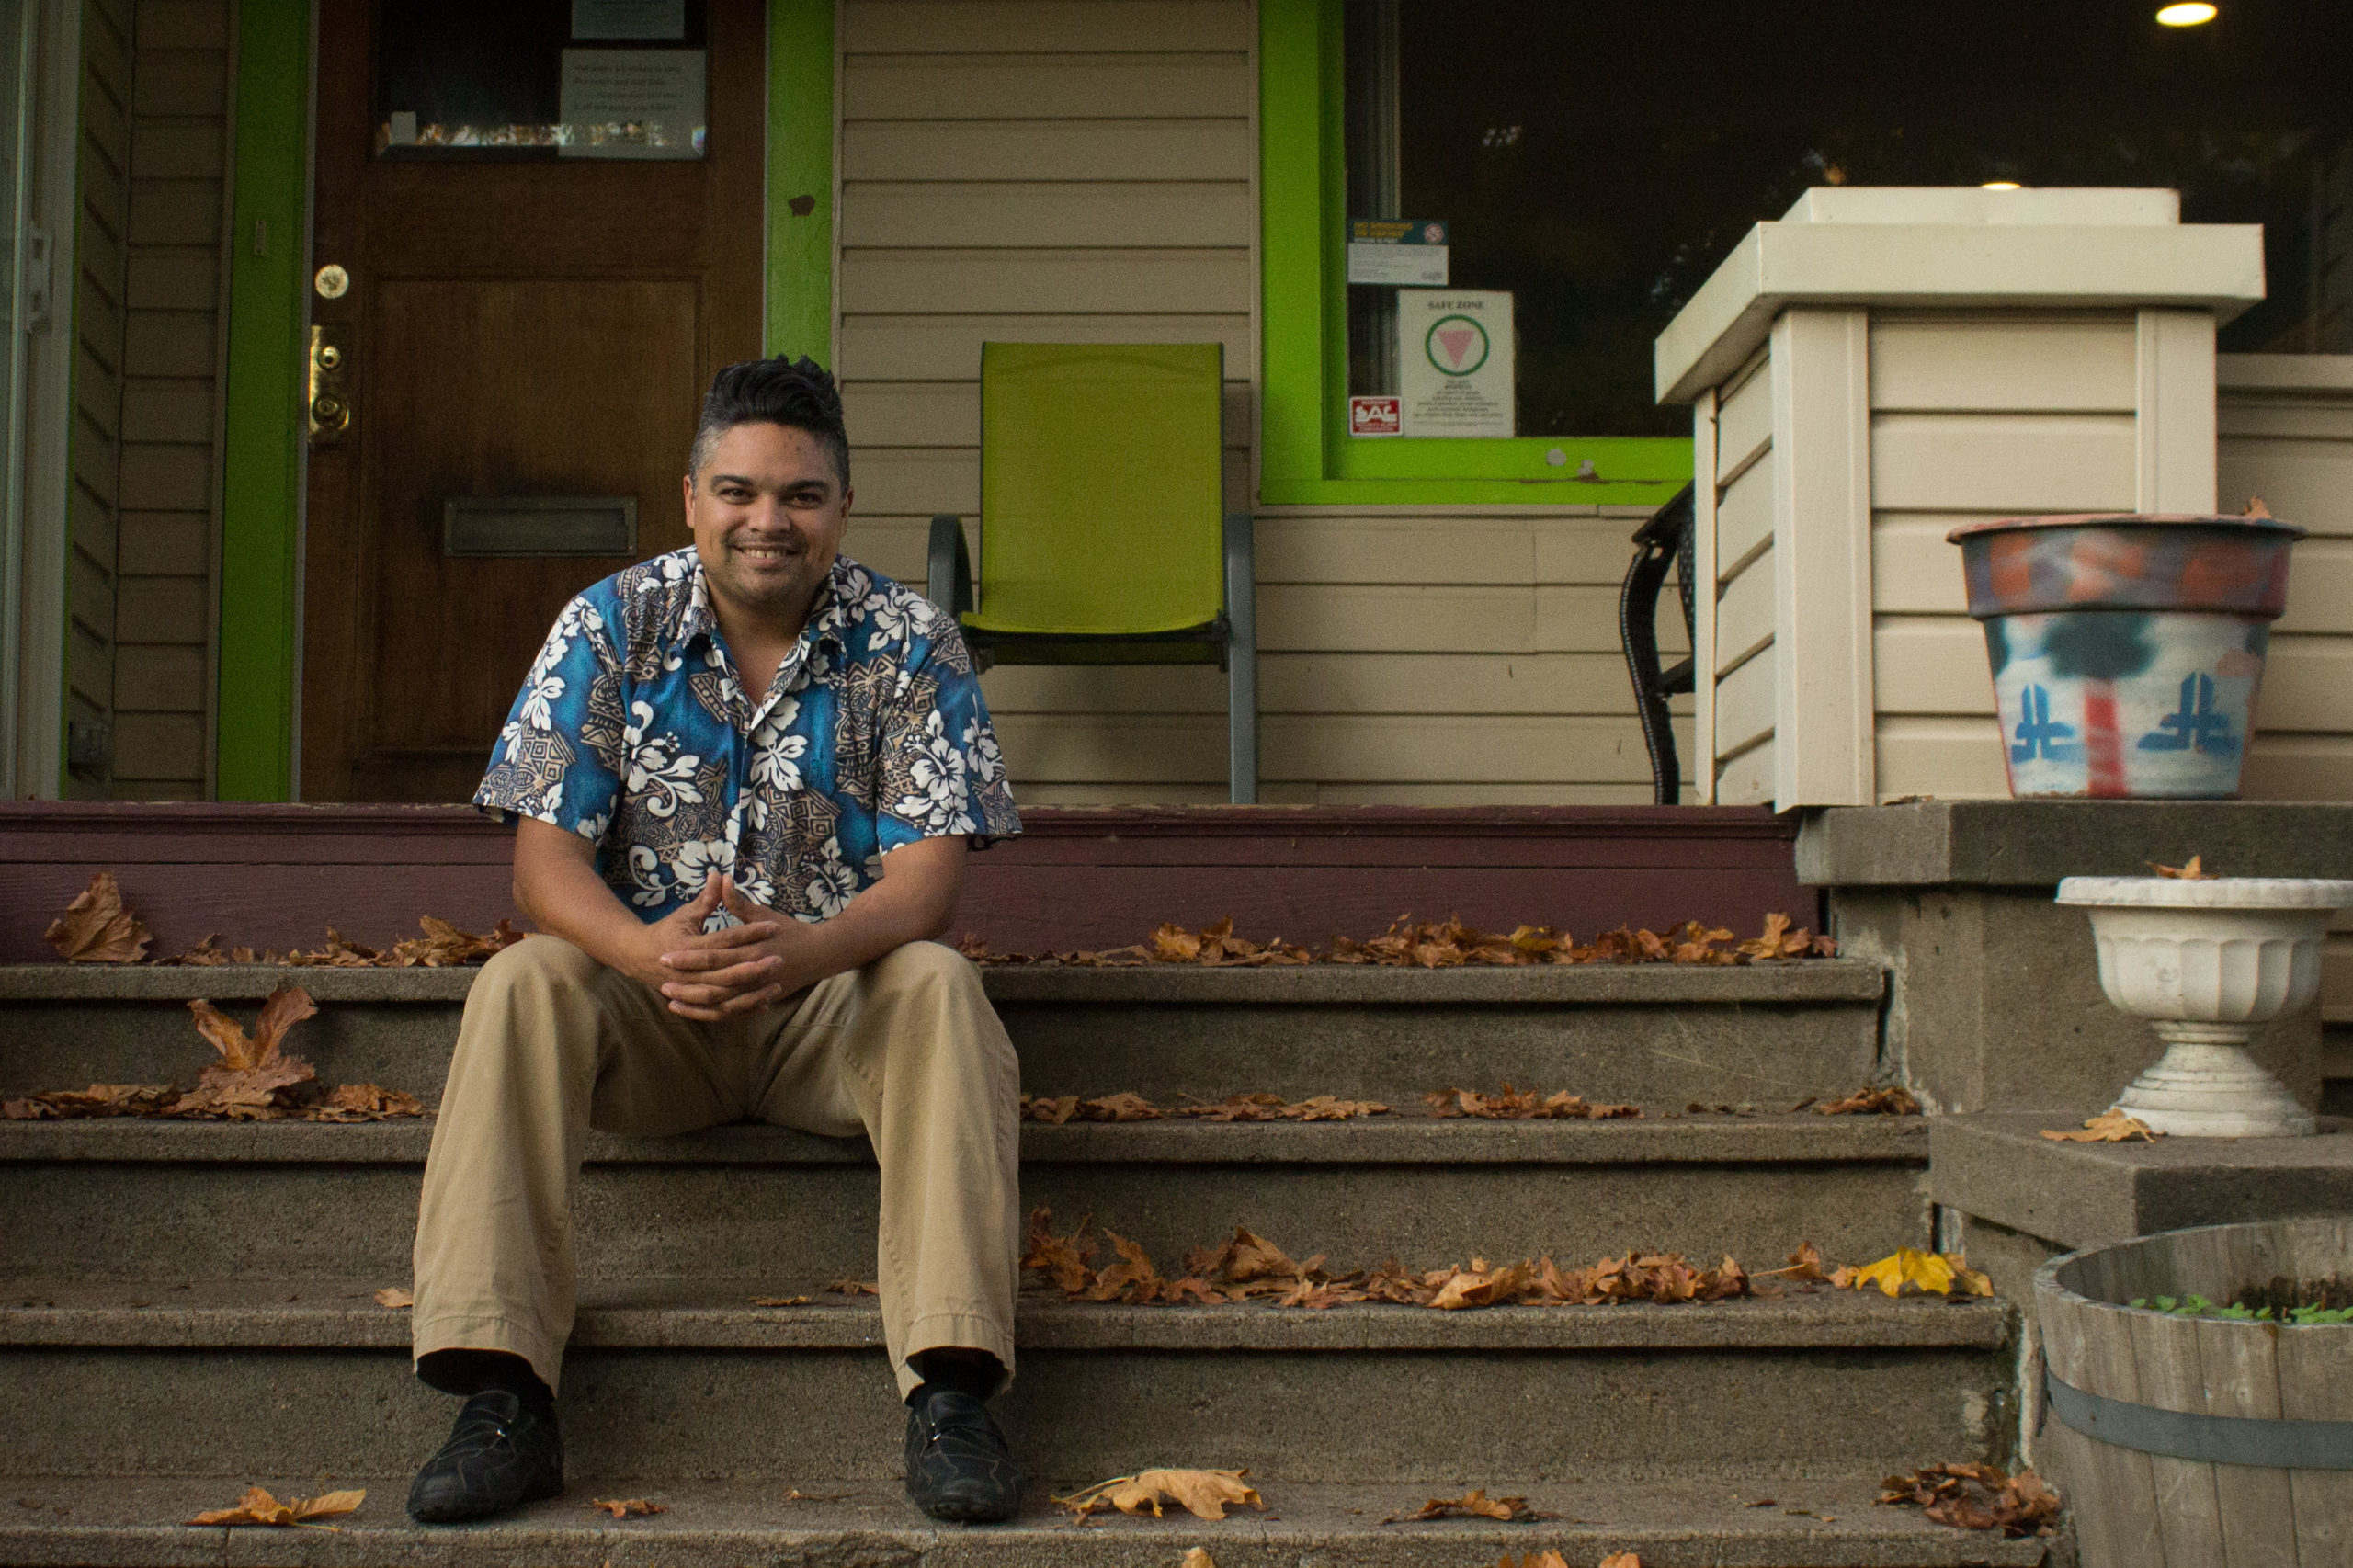 A man siting on porch steps smiling